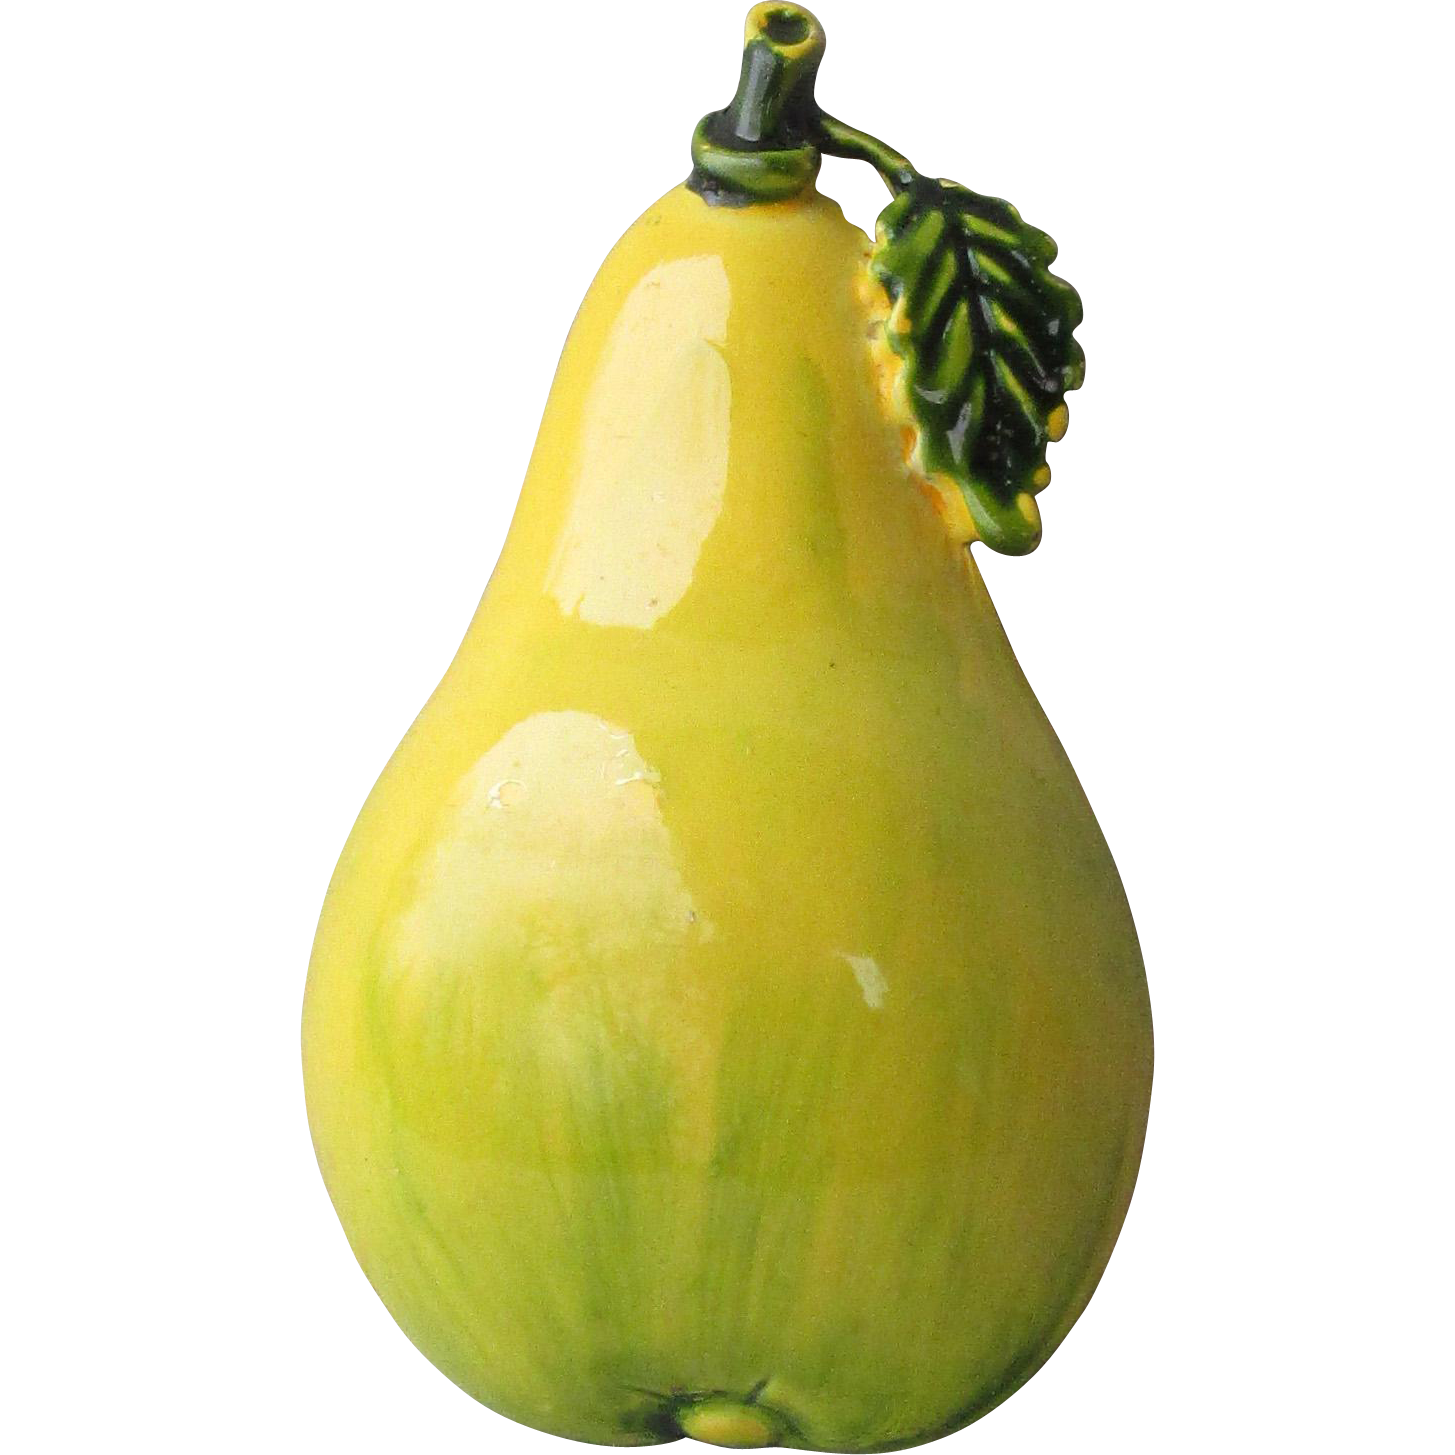 Fruit images gallery for. Pear clipart calabash